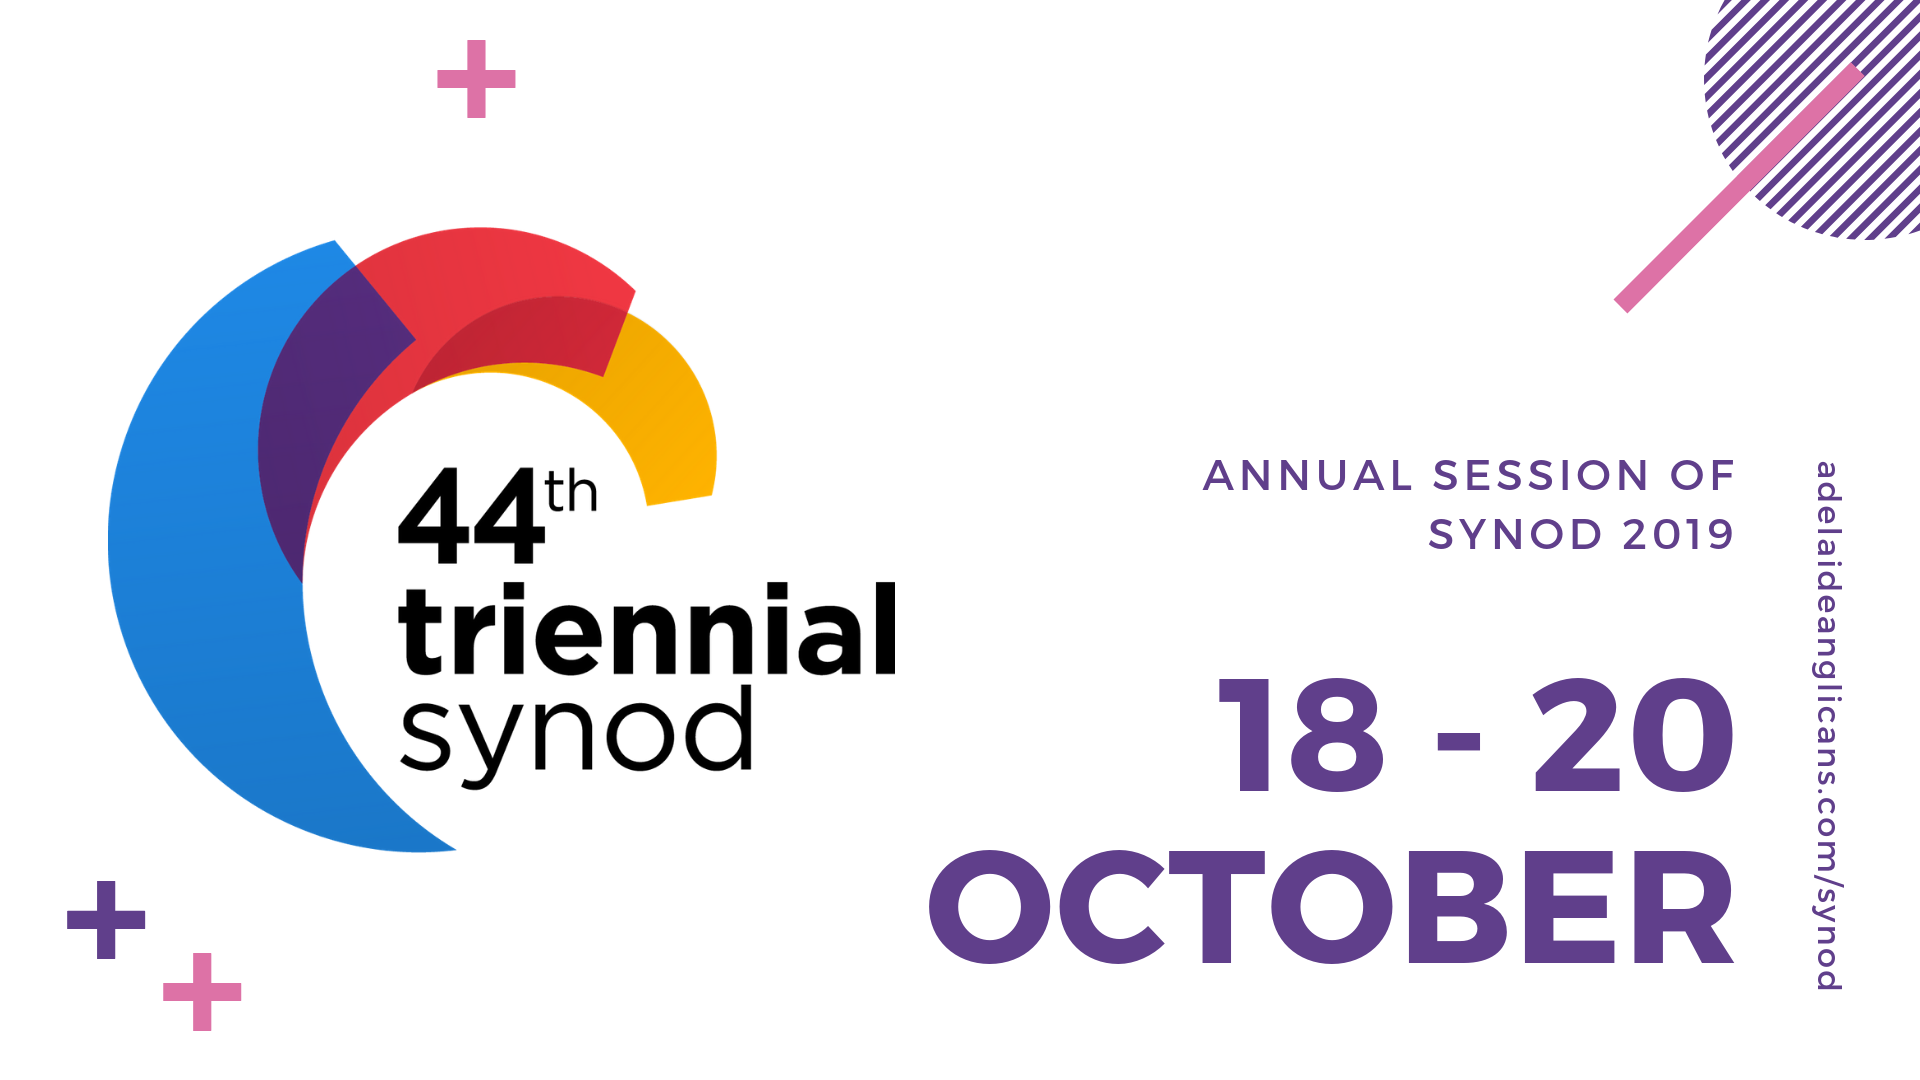 Annual Session of Synod 2019 Friday 18th October (Evening) to Sunday 20th October 2019.png